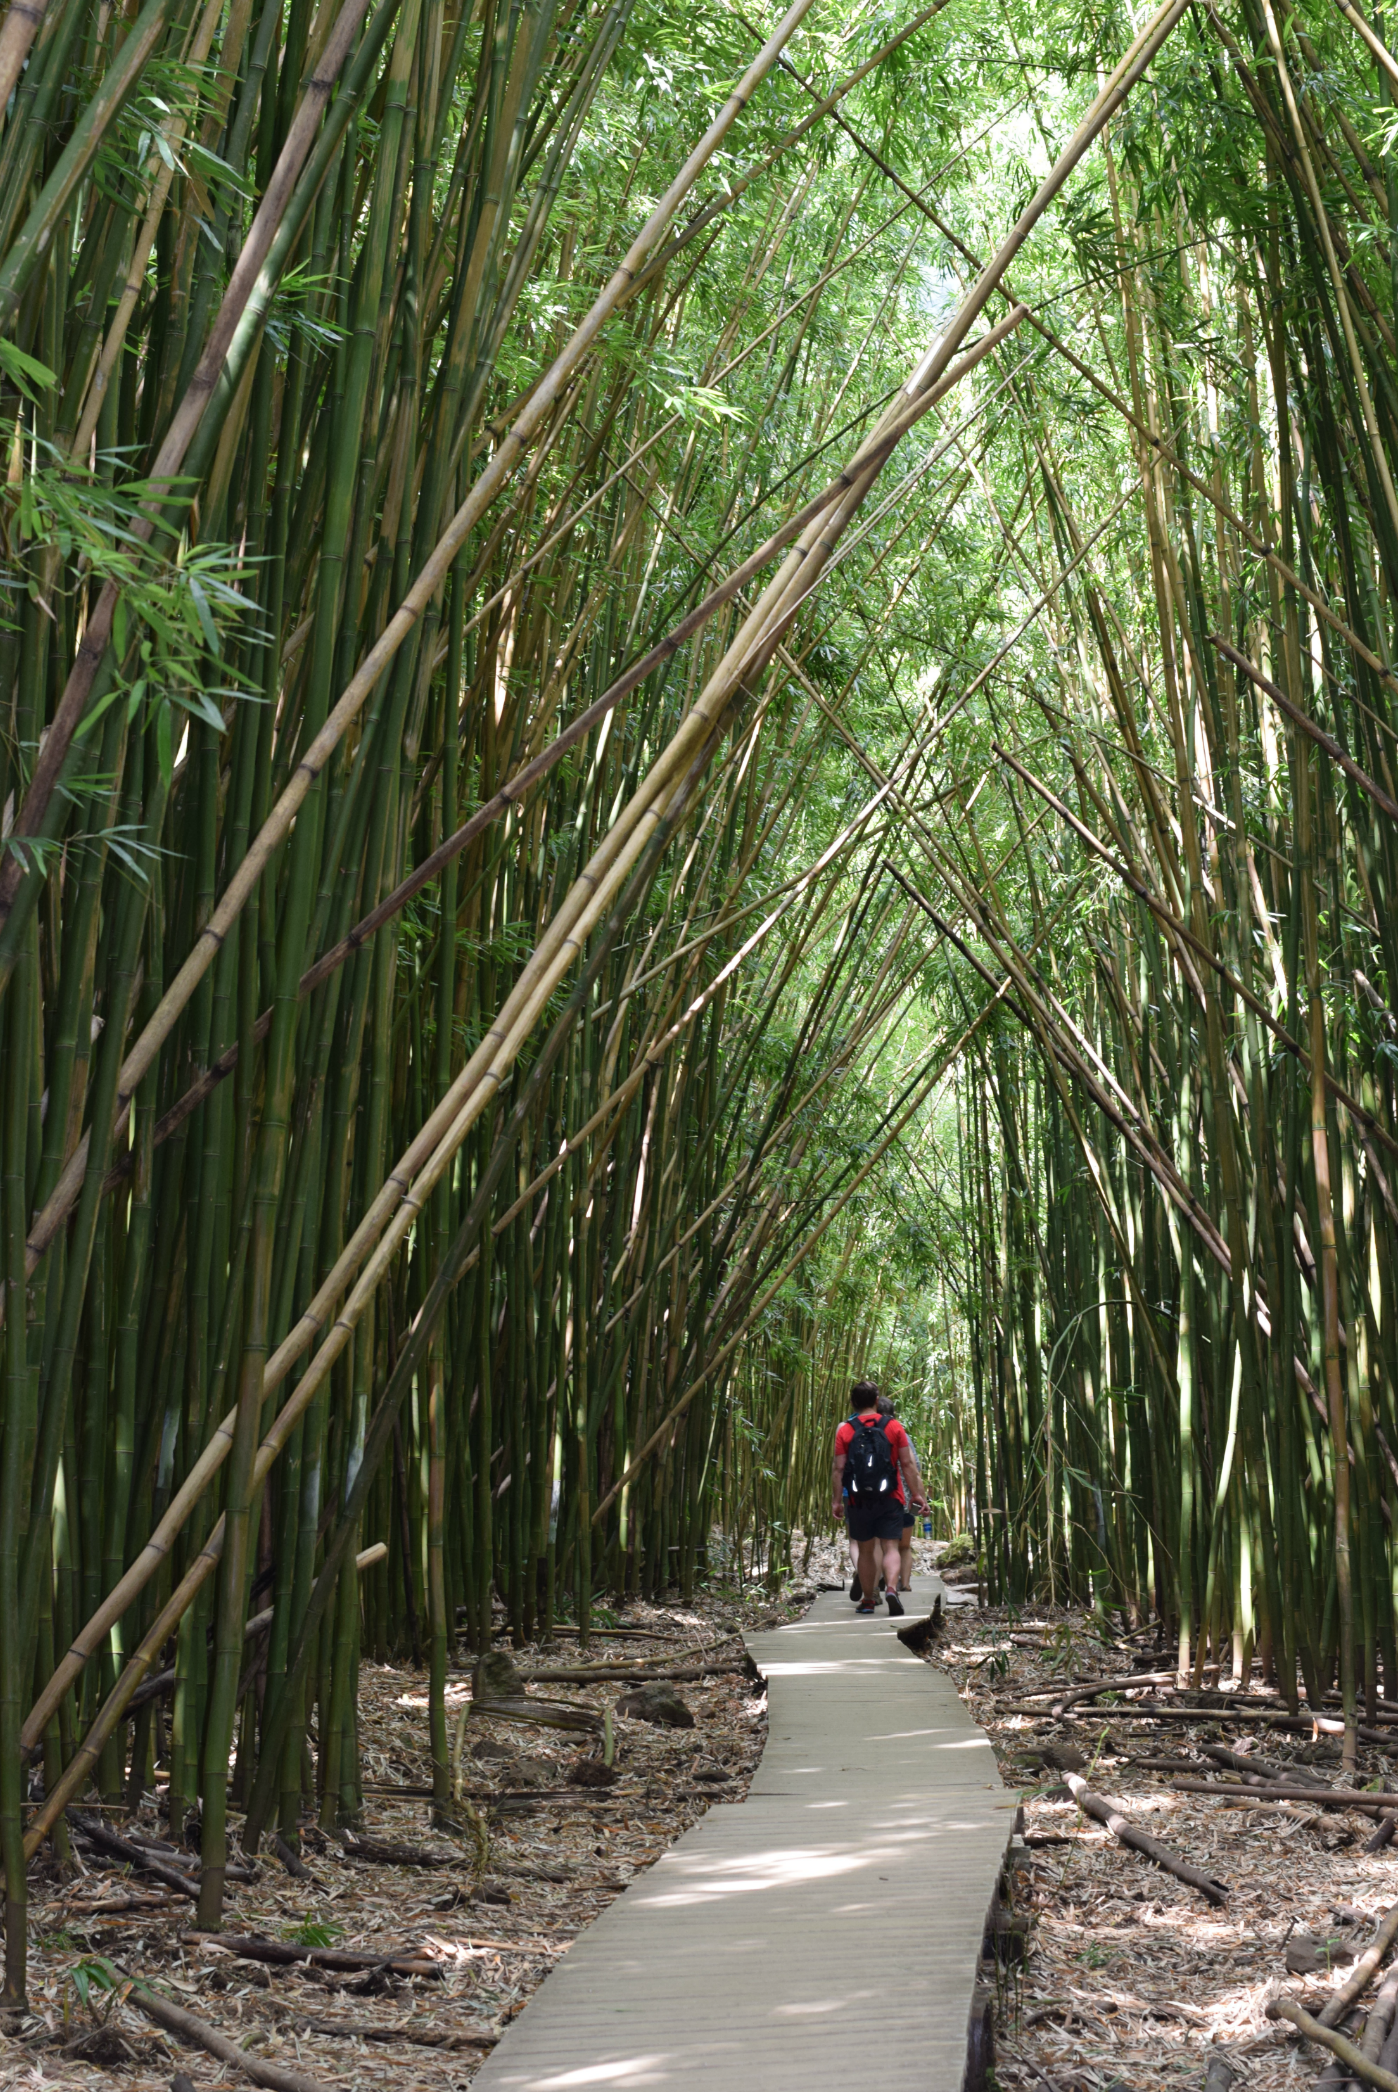 Bamboo Forest - Pipiwai Trail - How To Spend 48 Hours On Maui